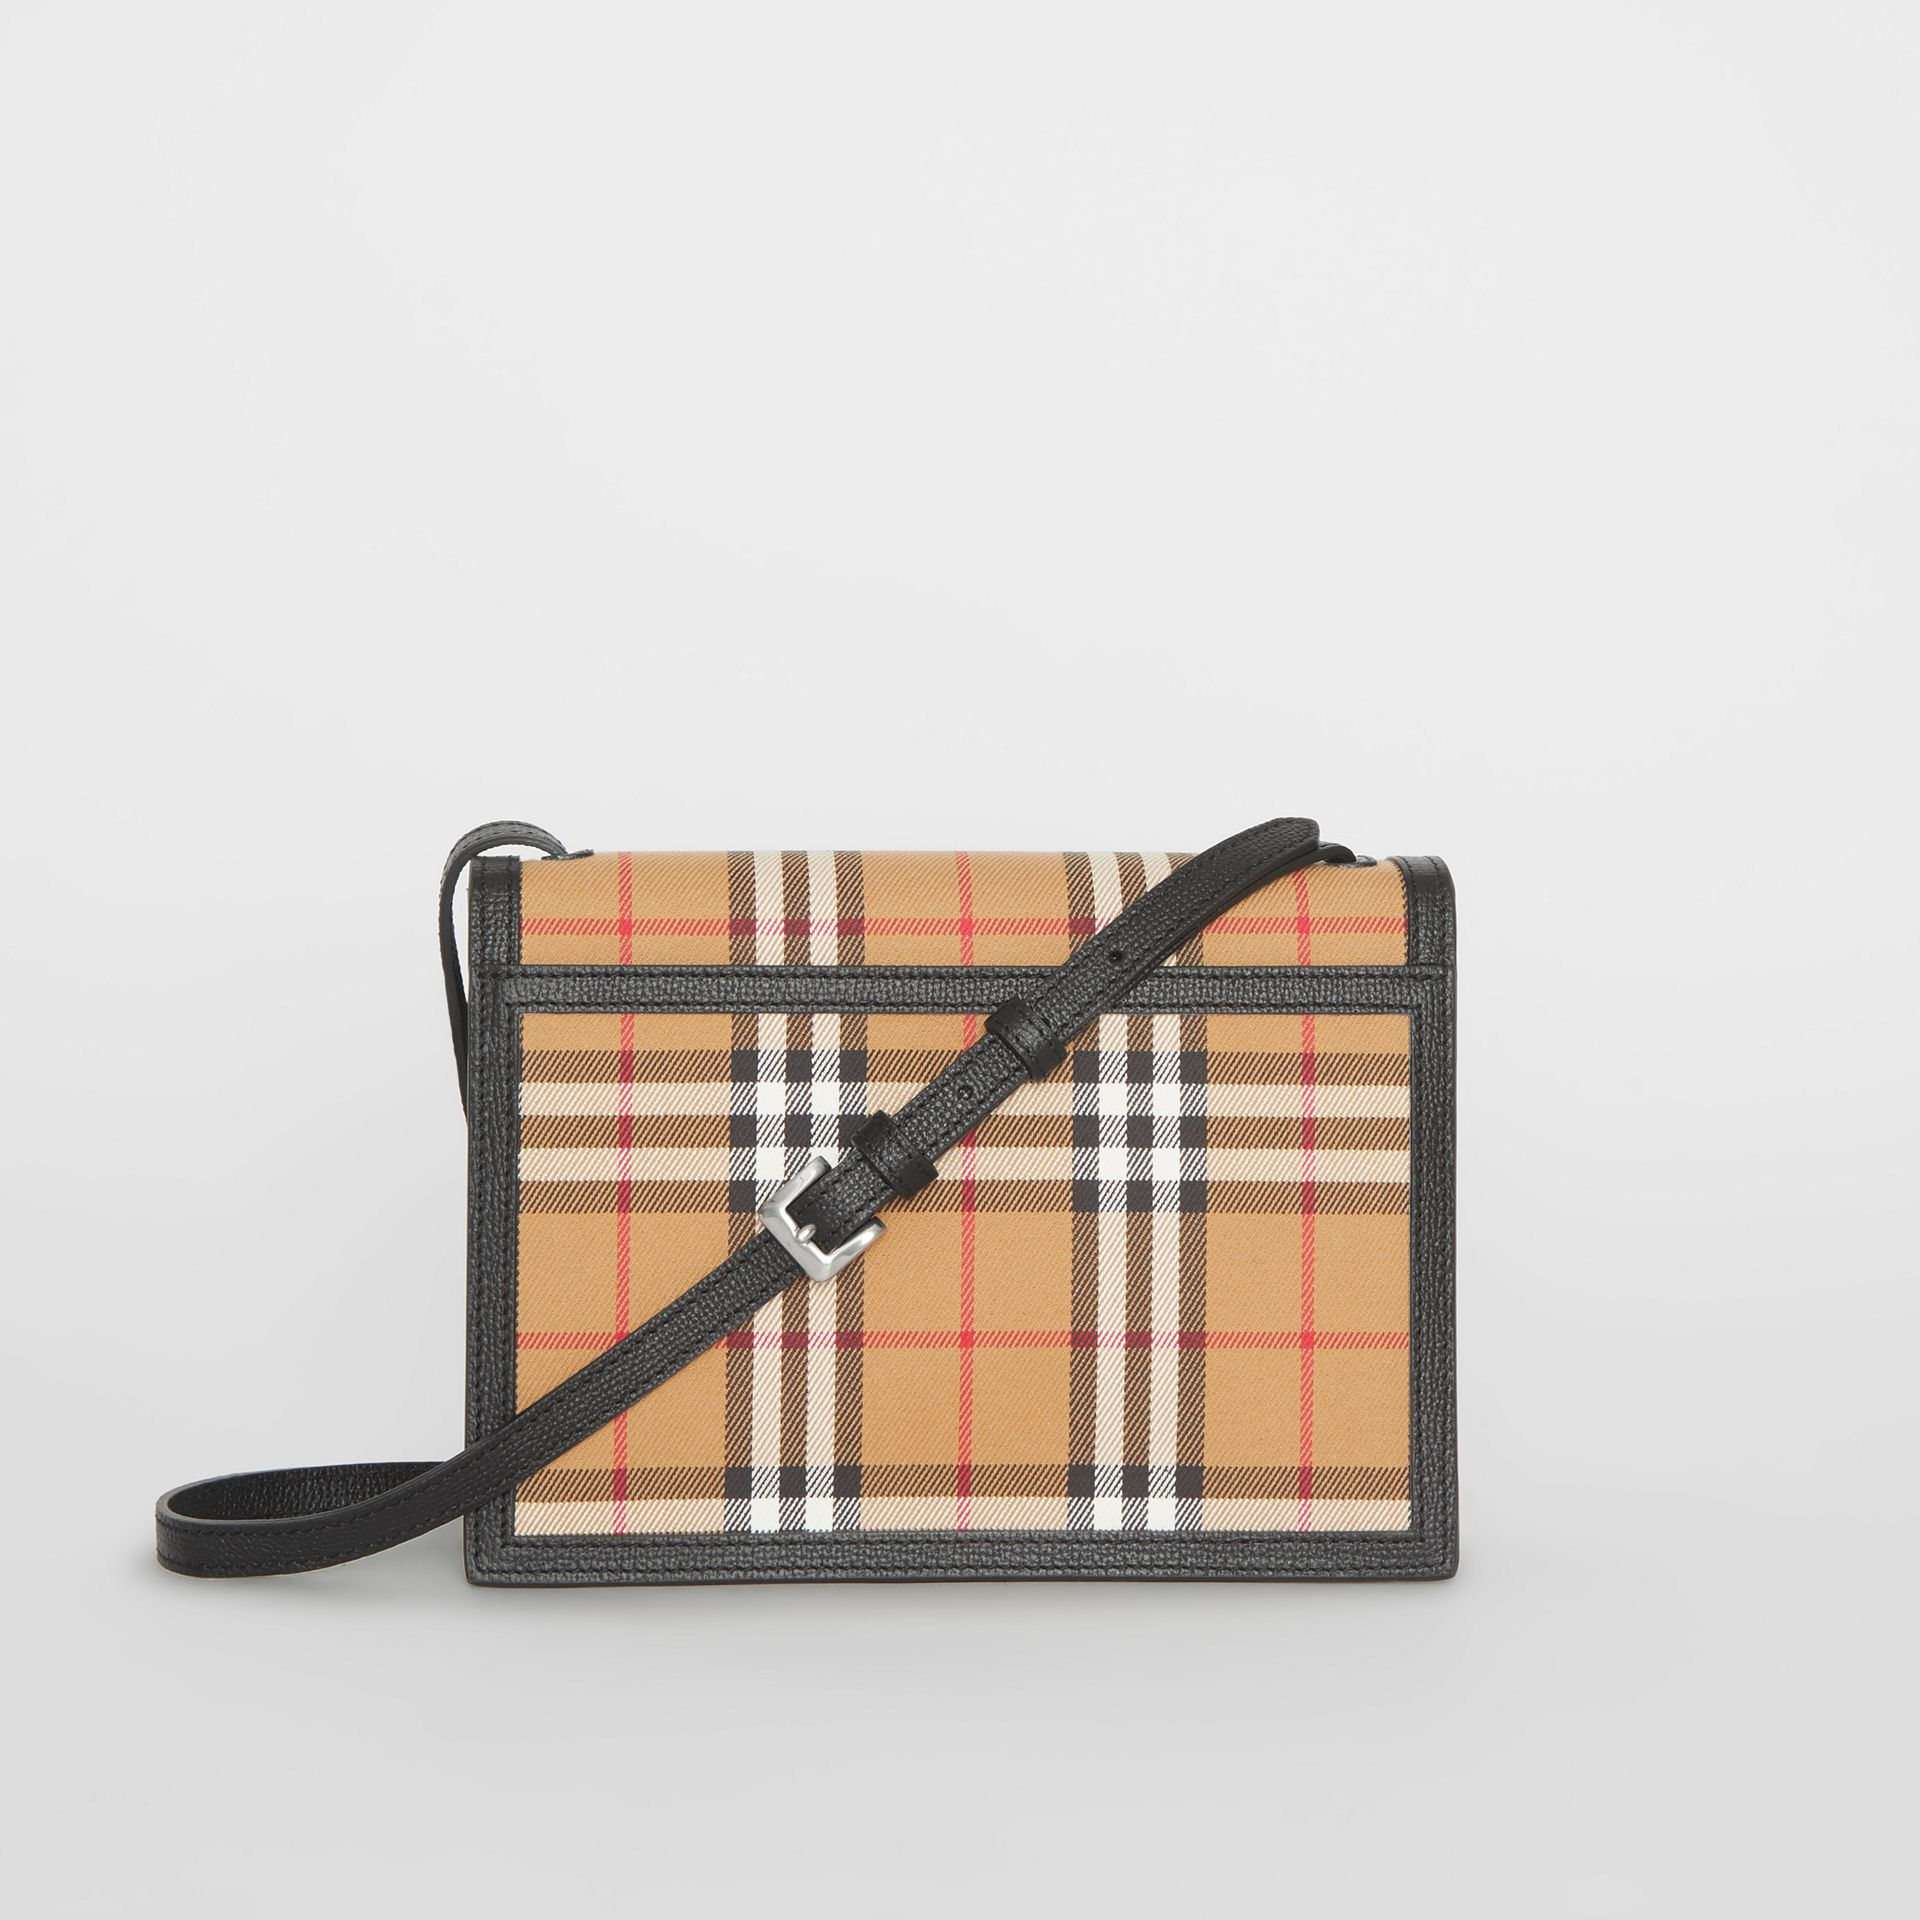 Small Vintage Check and Leather Crossbody Bag in Black - Women | Burberry United Kingdom - gallery image 7